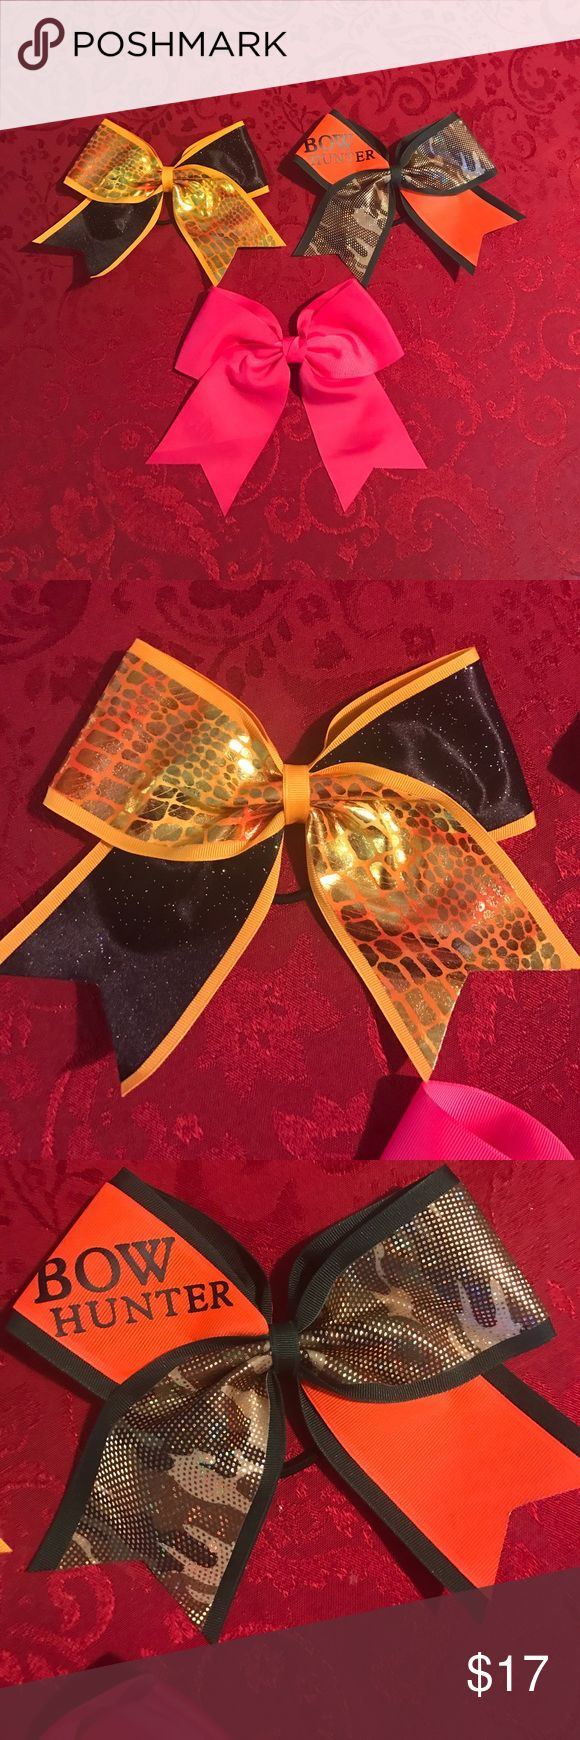 "🎀CHEER BOW BUNDLE🎀 I have three cheerleading bows in this bundle. The first one is black and yellow with a hair tie, the second one is green, orange, and camo, says, ""BOW HUNTER"", and has a hair tie, and the last one is just solid pink with a clip. They have never been used. Accessories Hair Accessories"